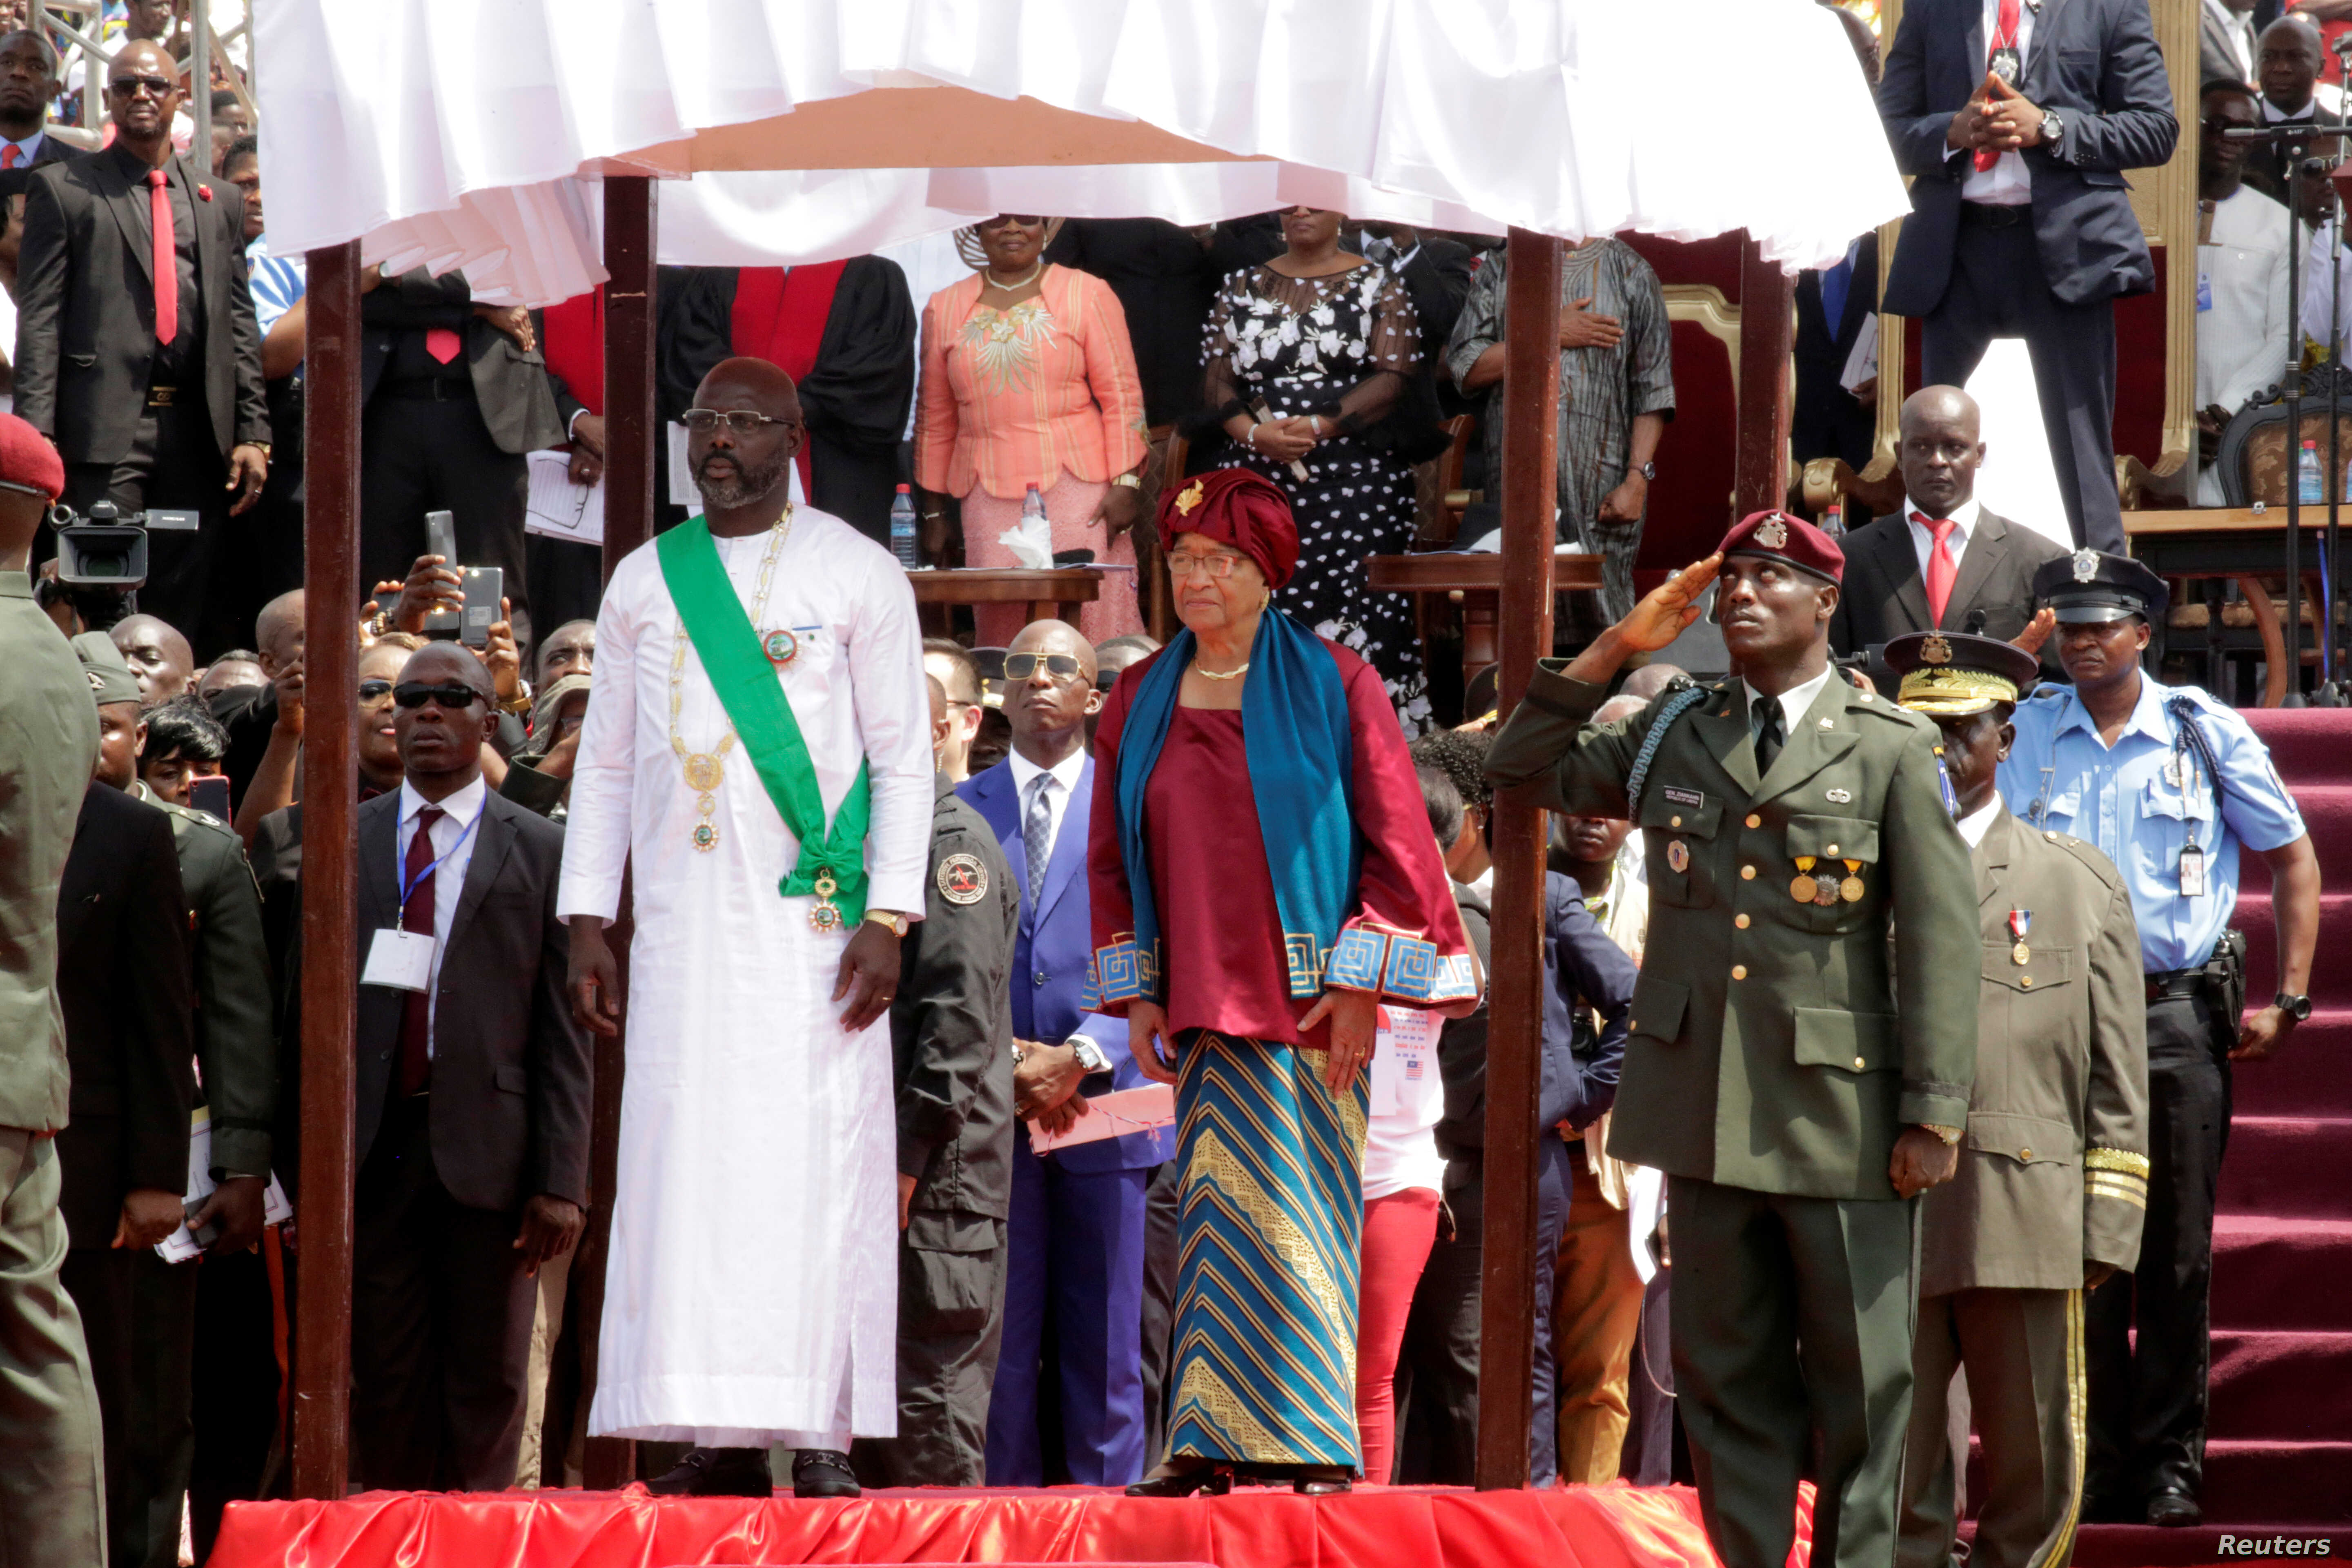 Liberia's former President Ellen Johnson Sirleaf and the new President-elect George Weah are seen during his swearing-in ceremony at Samuel Kanyon Doe Sports Complex in Monrovia, Liberia, Jan. 22, 2018.